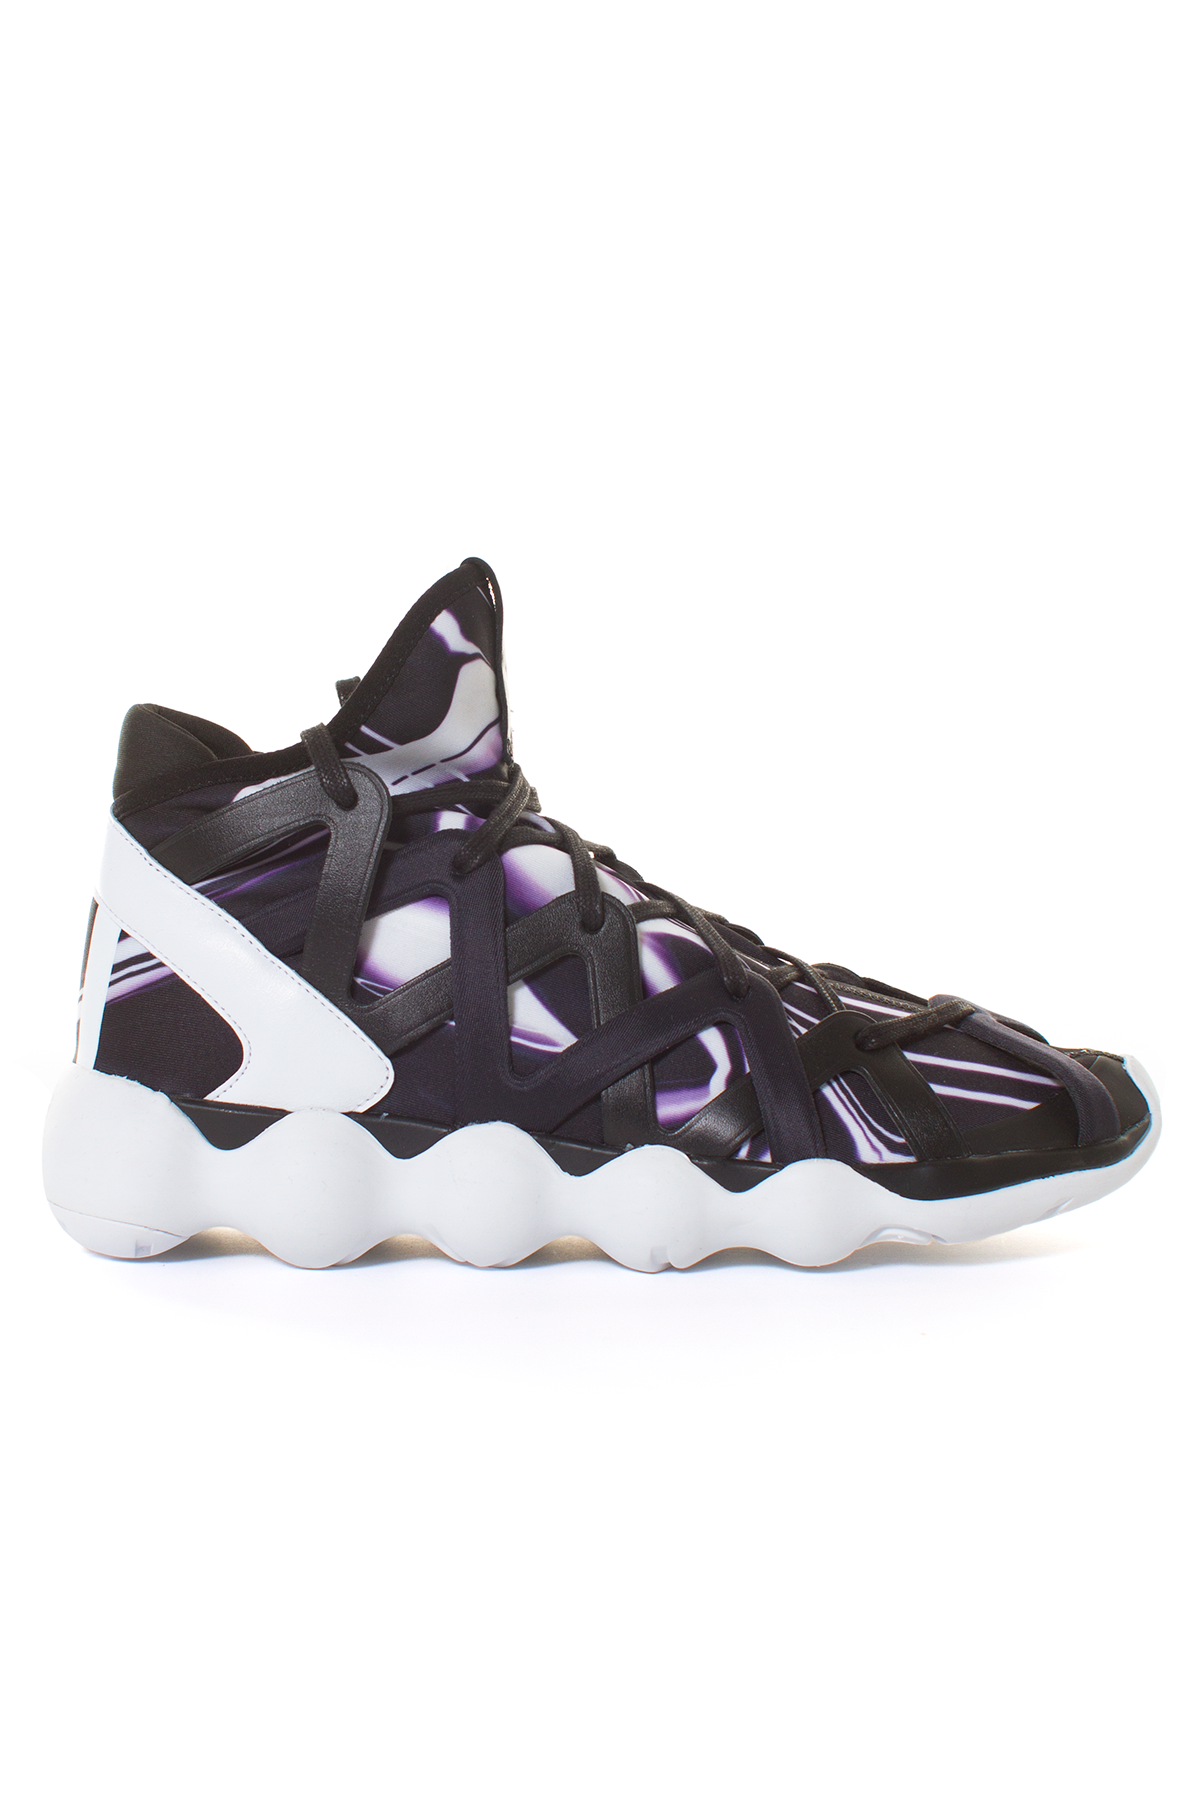 8923f5f26e72 ADIDAS BY Y-3 KYUJO HIGH Lace-up high tops with print. Made in China ...